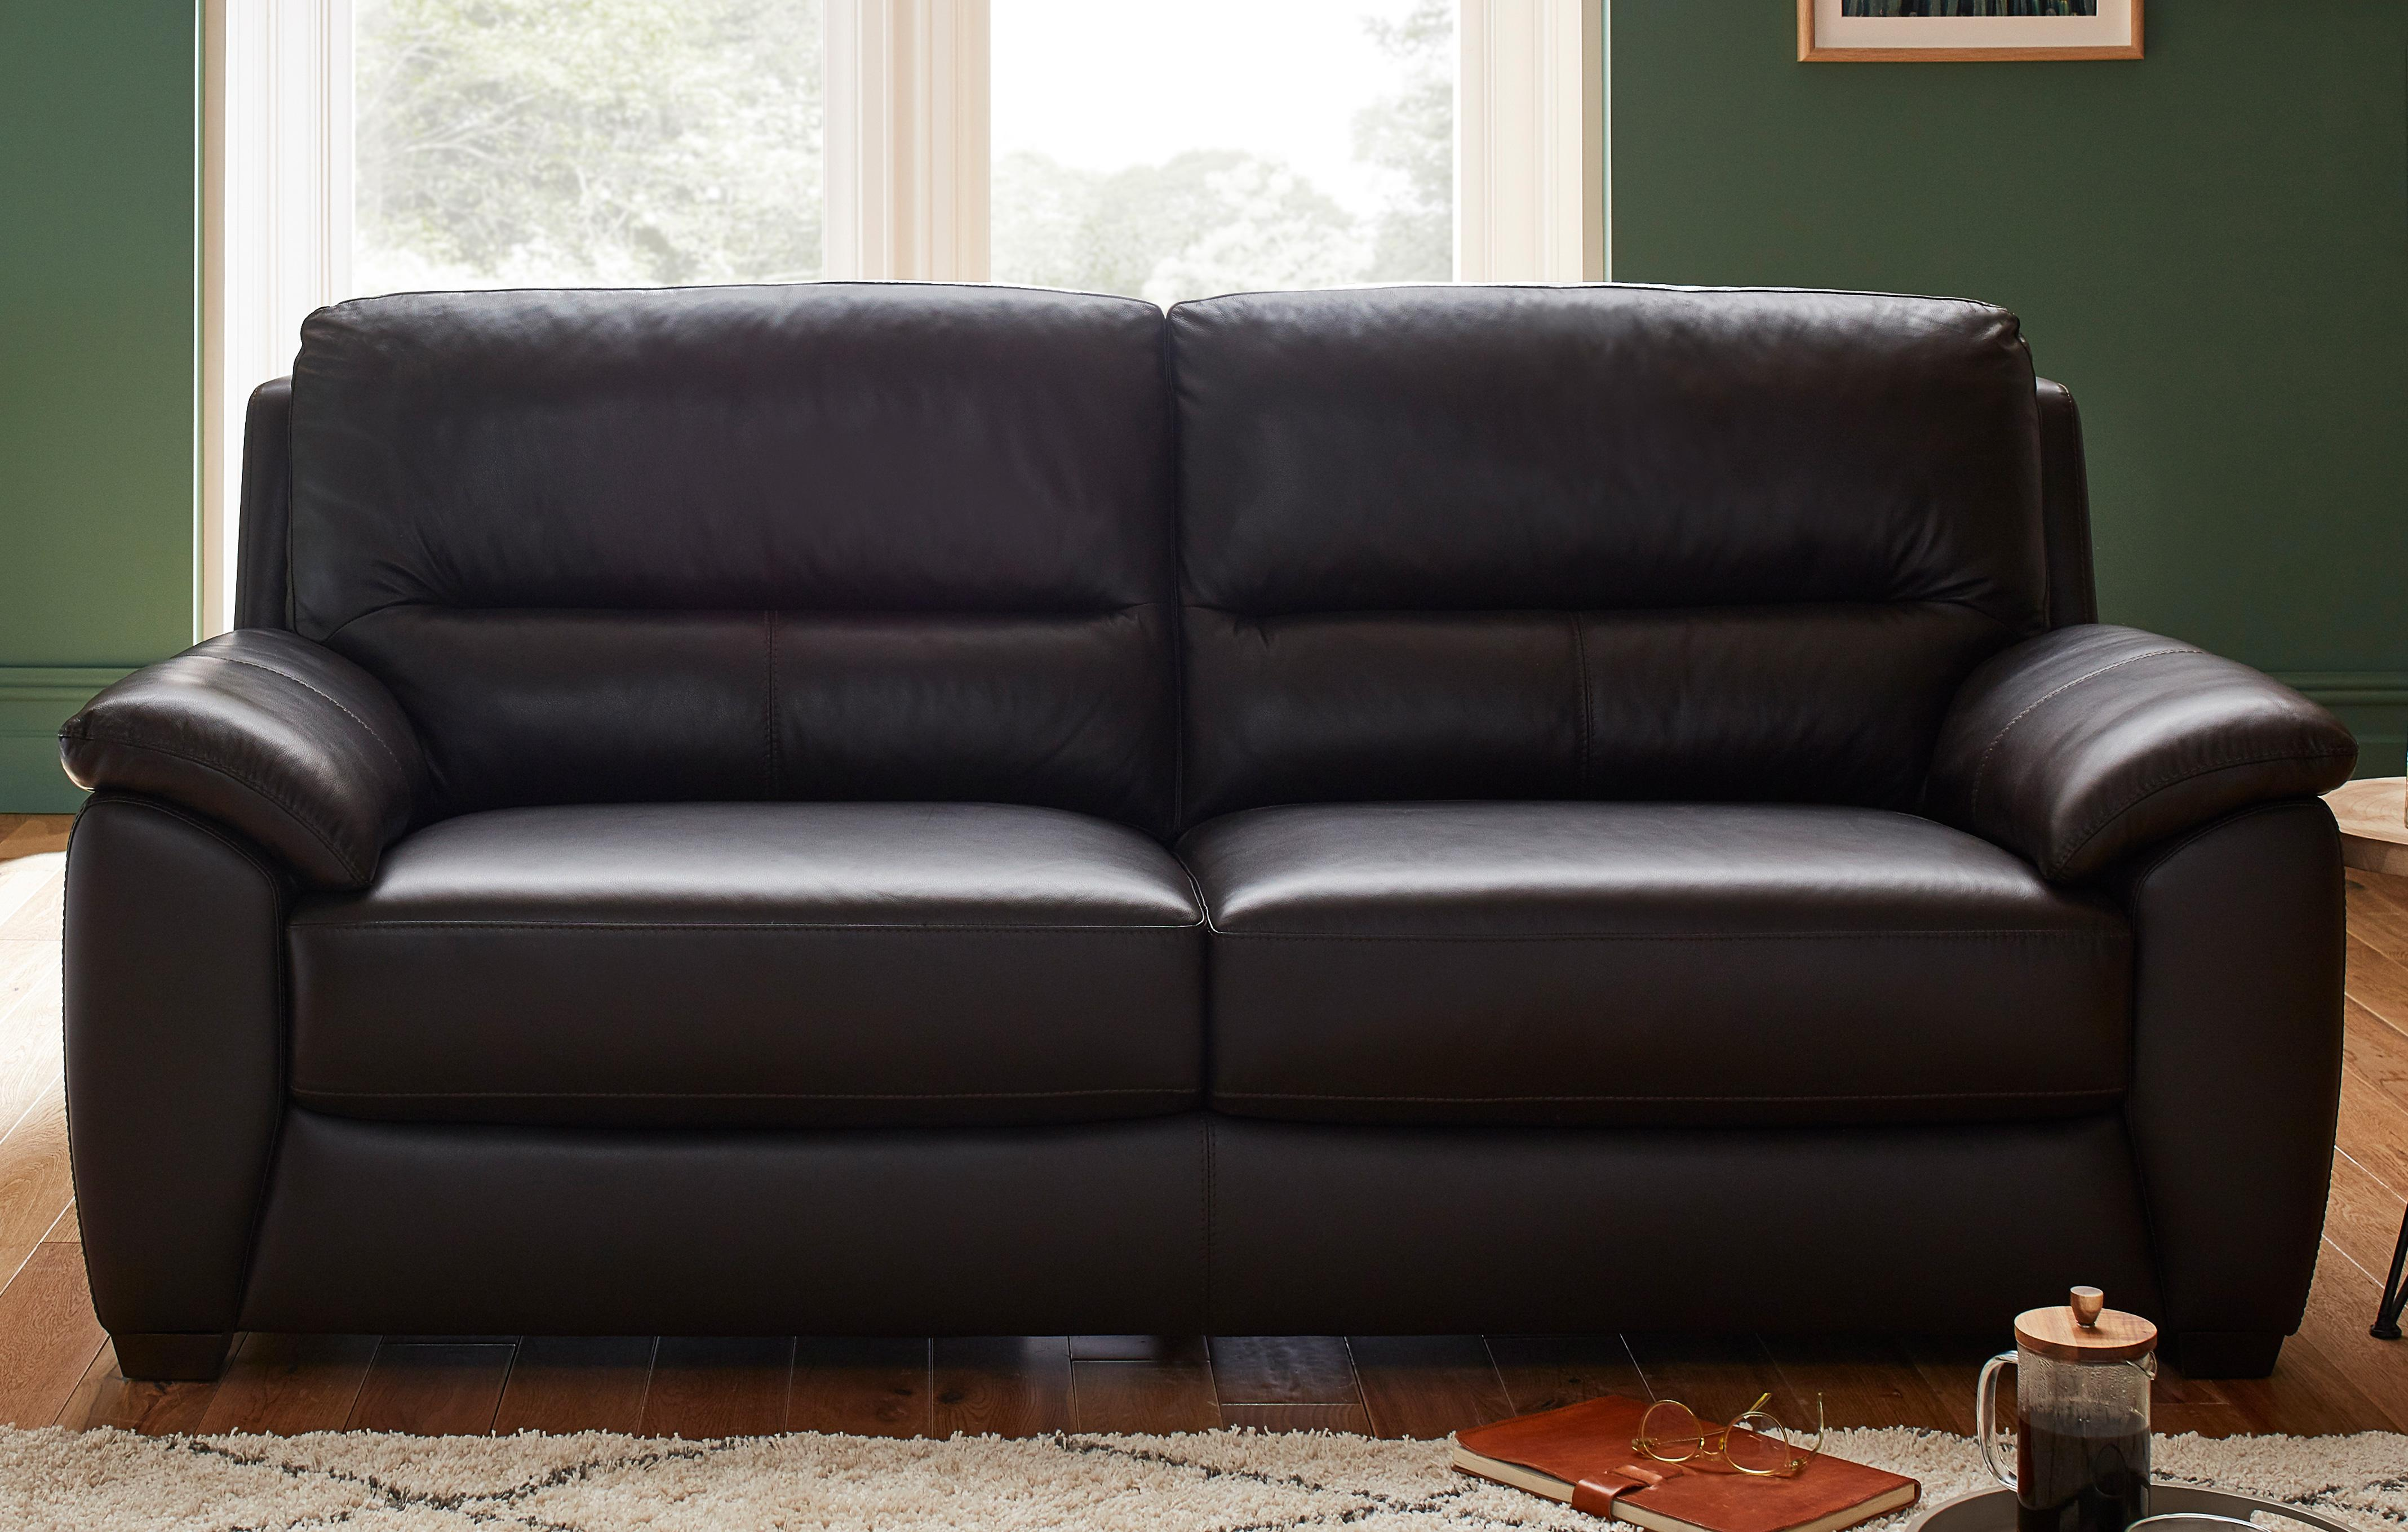 dalton sofa leon s latest wooden designs in india leather sofas a range of styles dfs